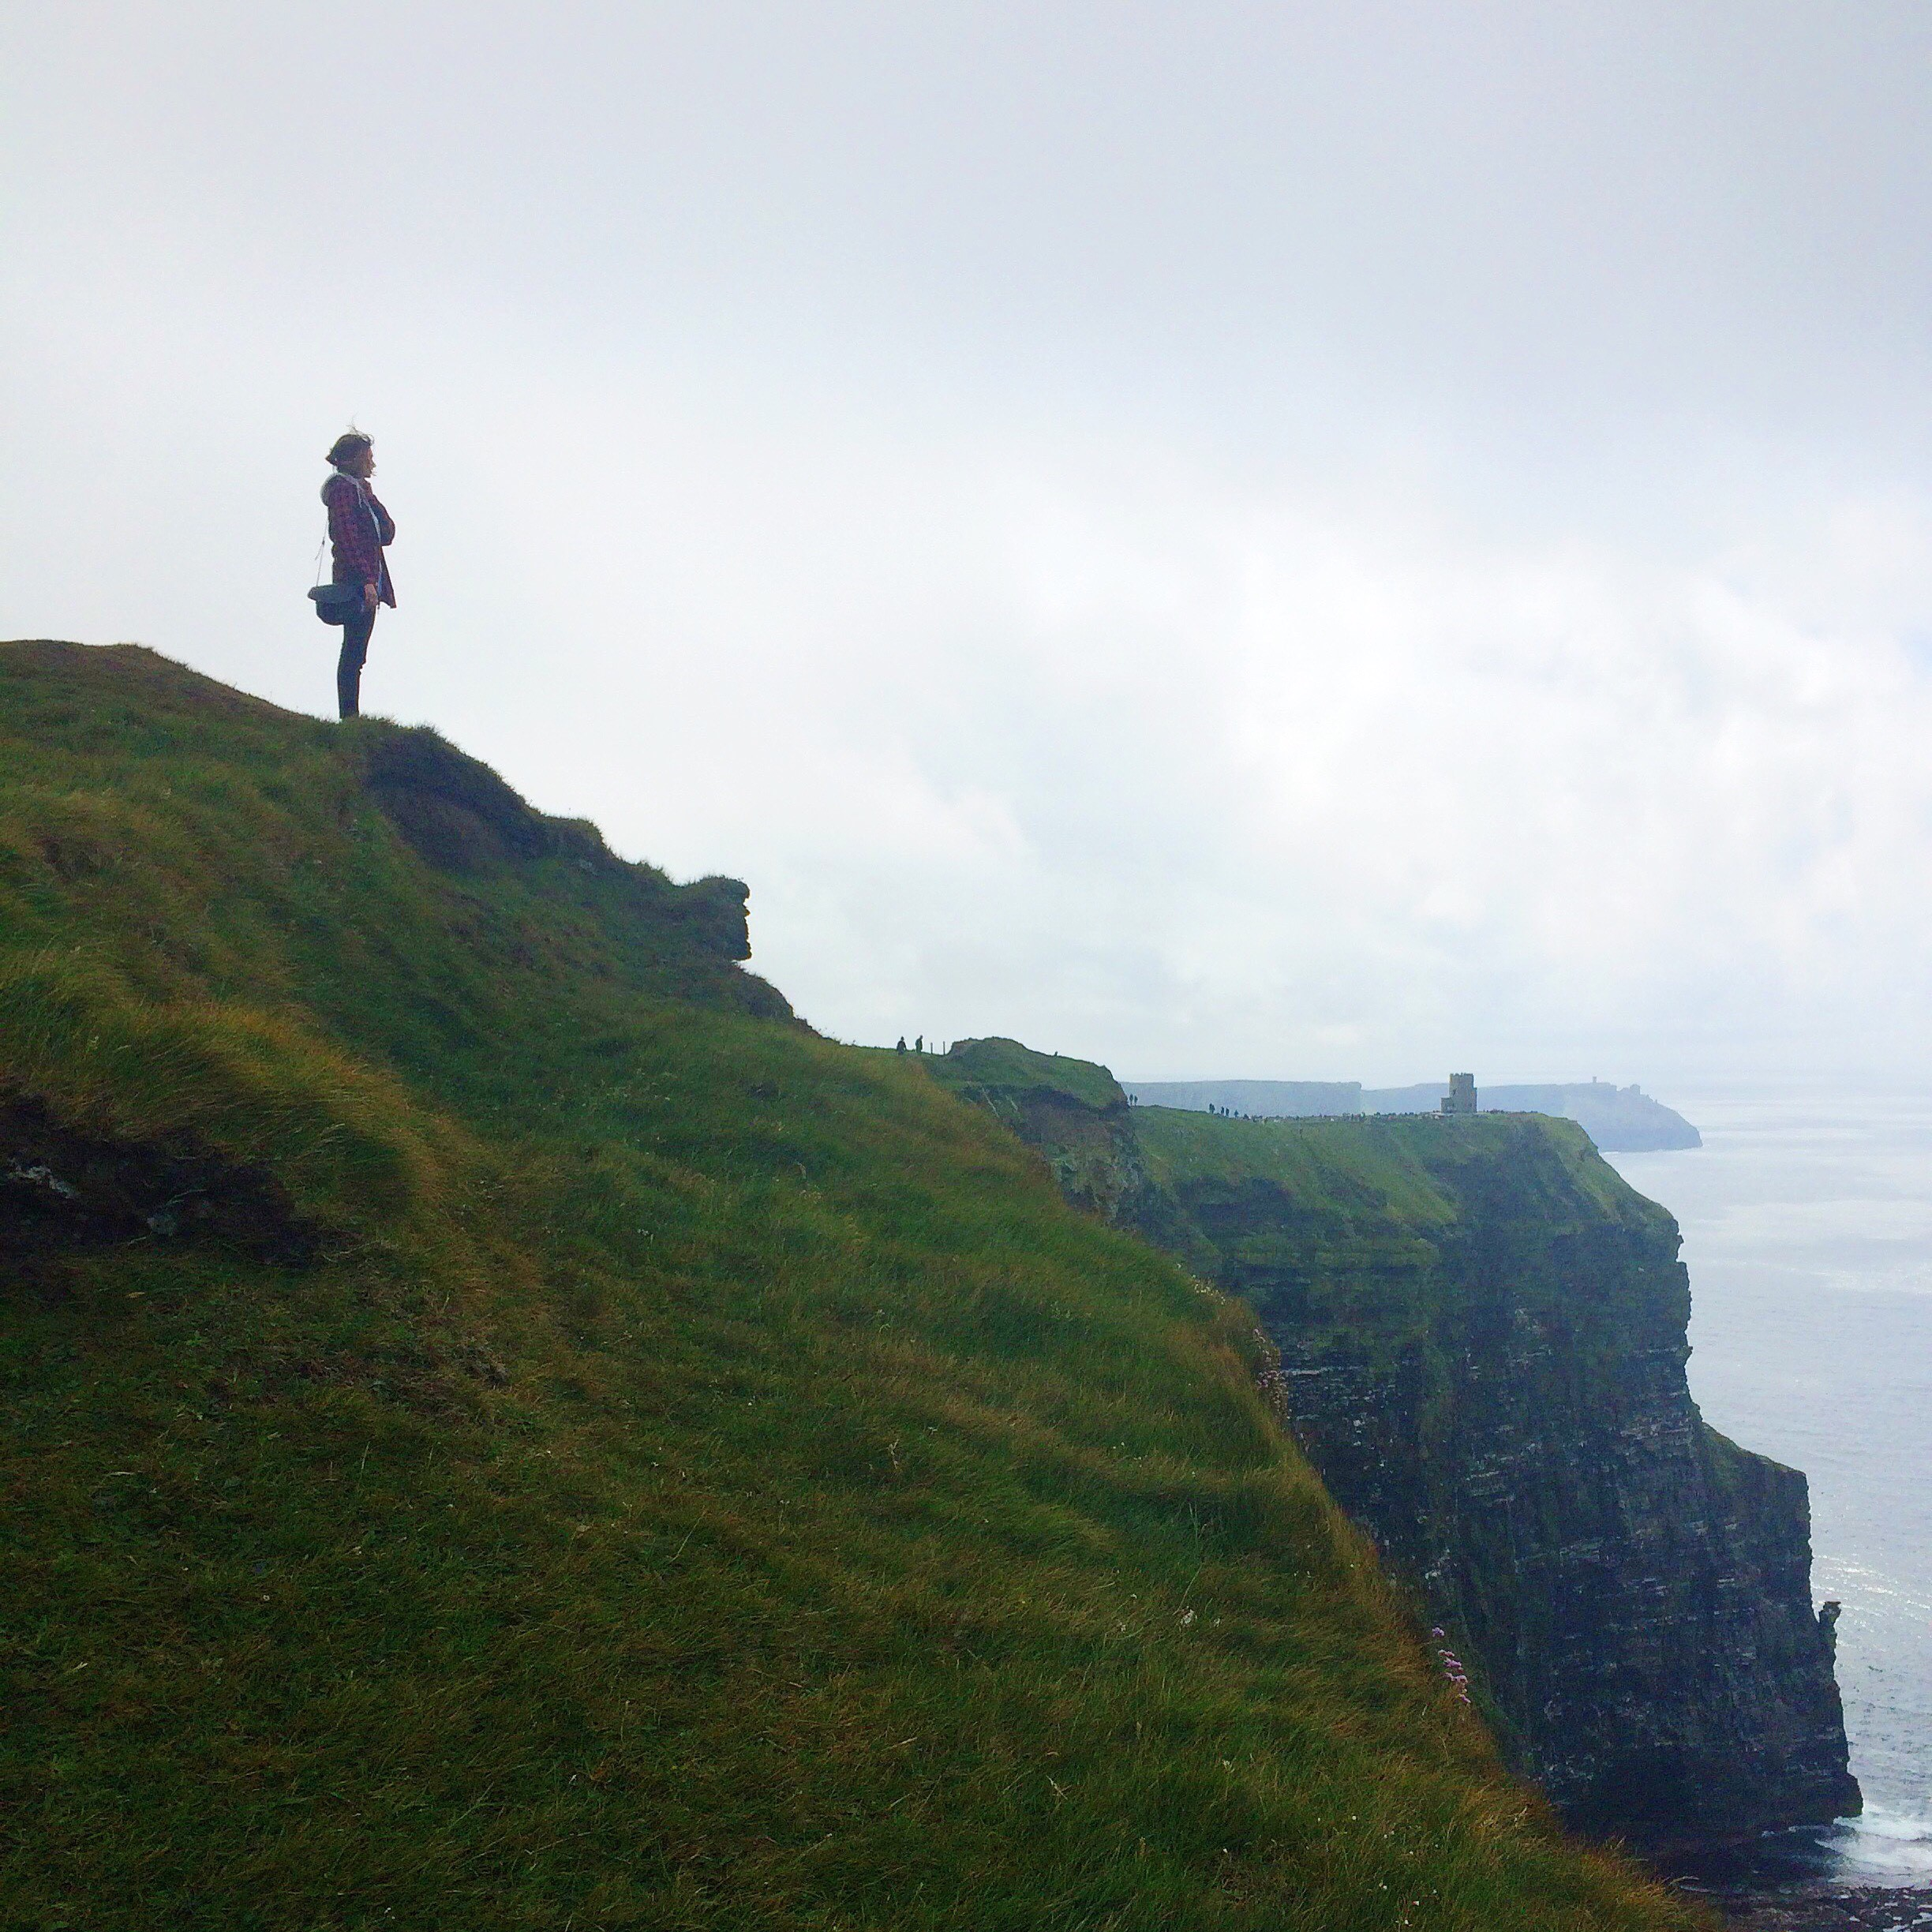 Student up on cliff looks out over foggy coast